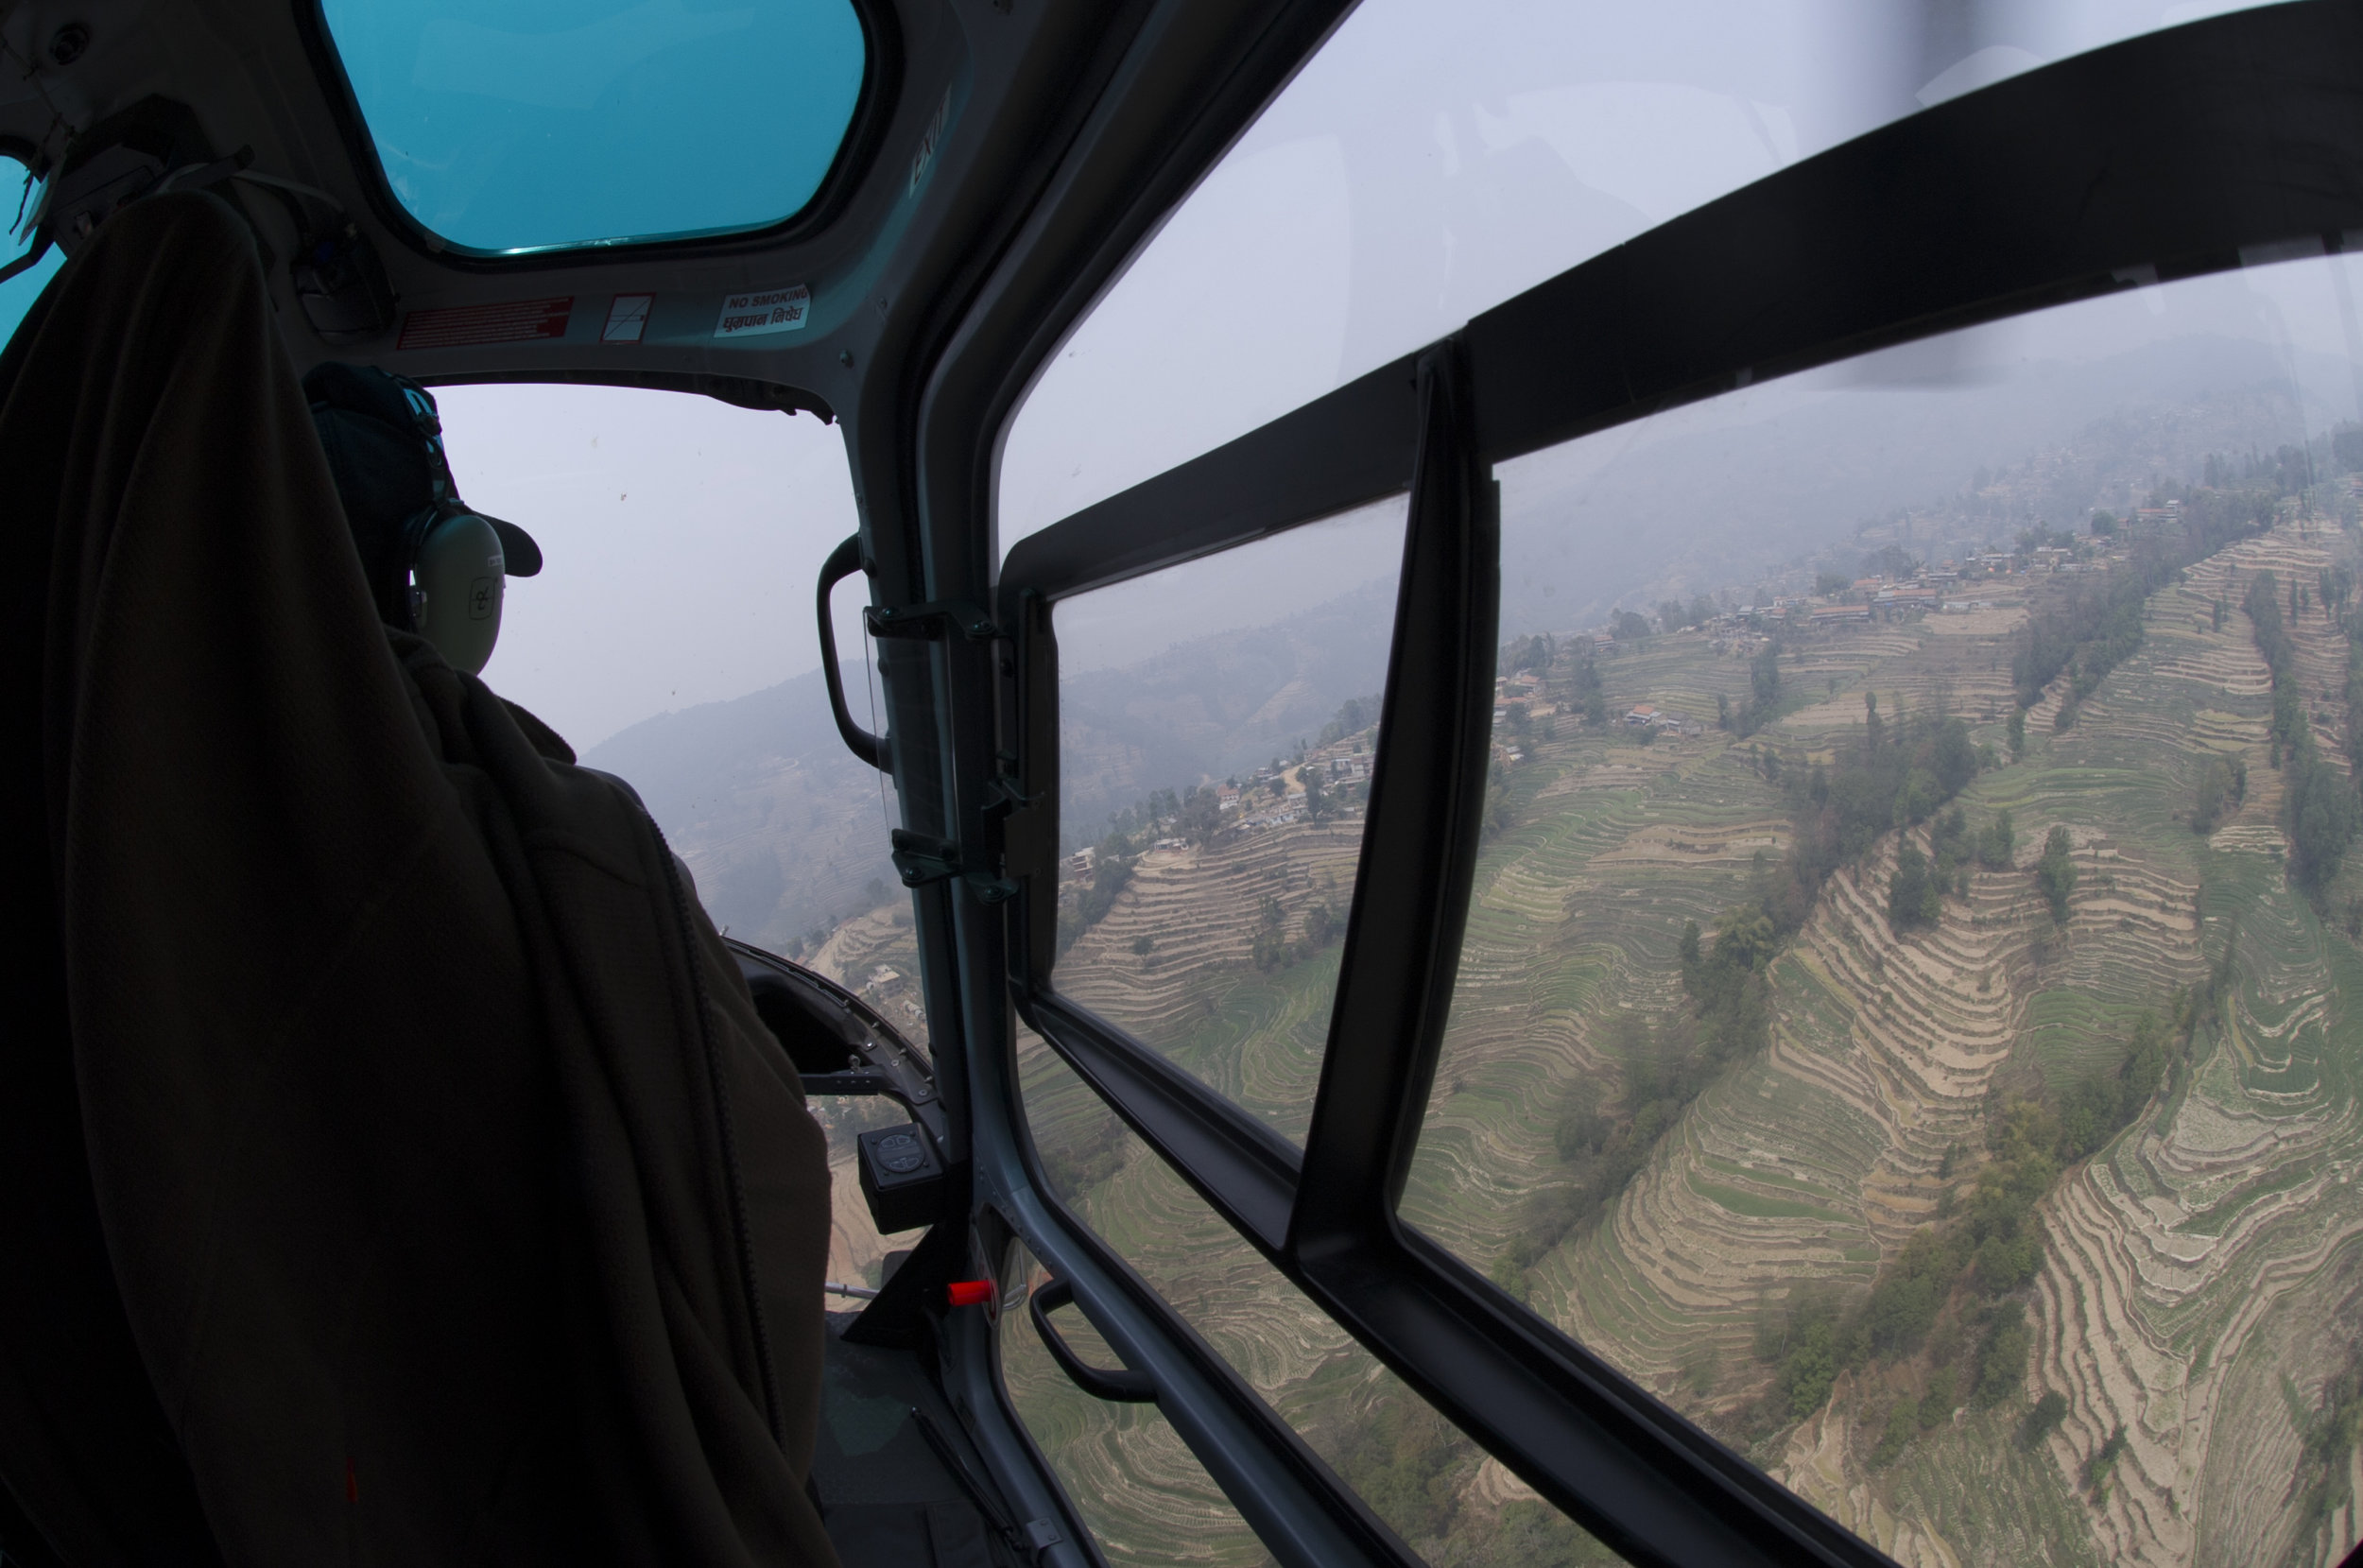 mck nepal 2016 helo terraces below DSC_7042.jpg